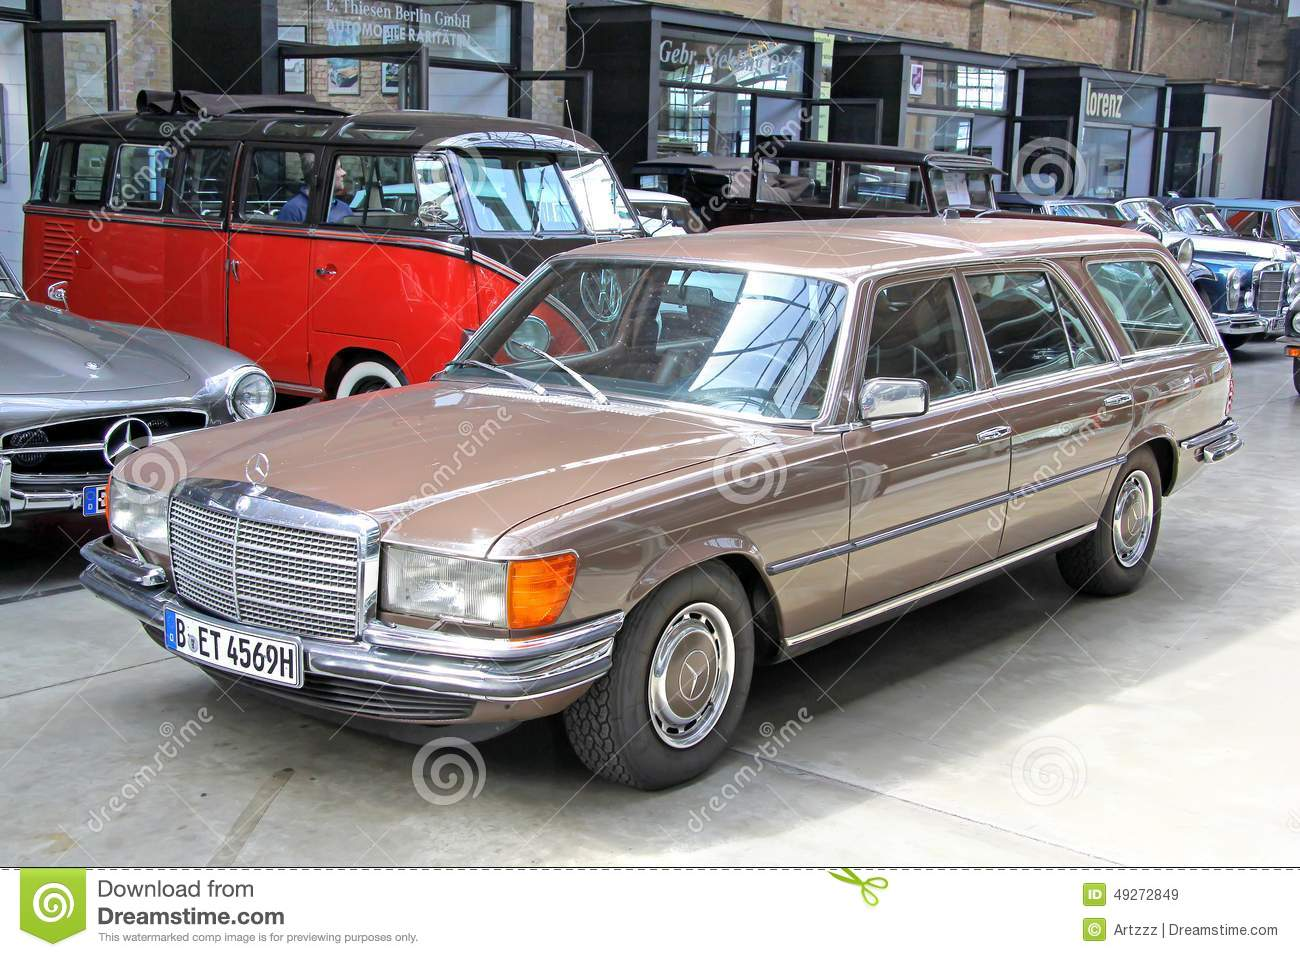 Mercedes benz w116 450sel 6 9 image stock ditorial for Mercedes benz stock